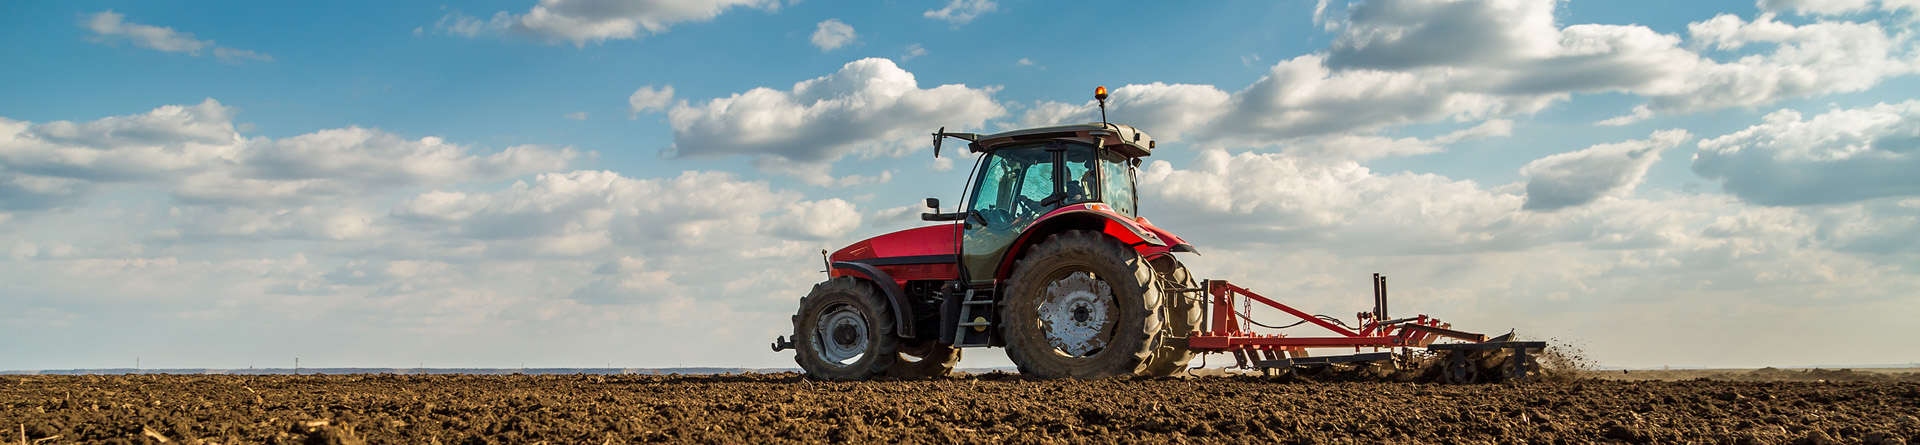 Farmer on cultivator preparing fields for planting